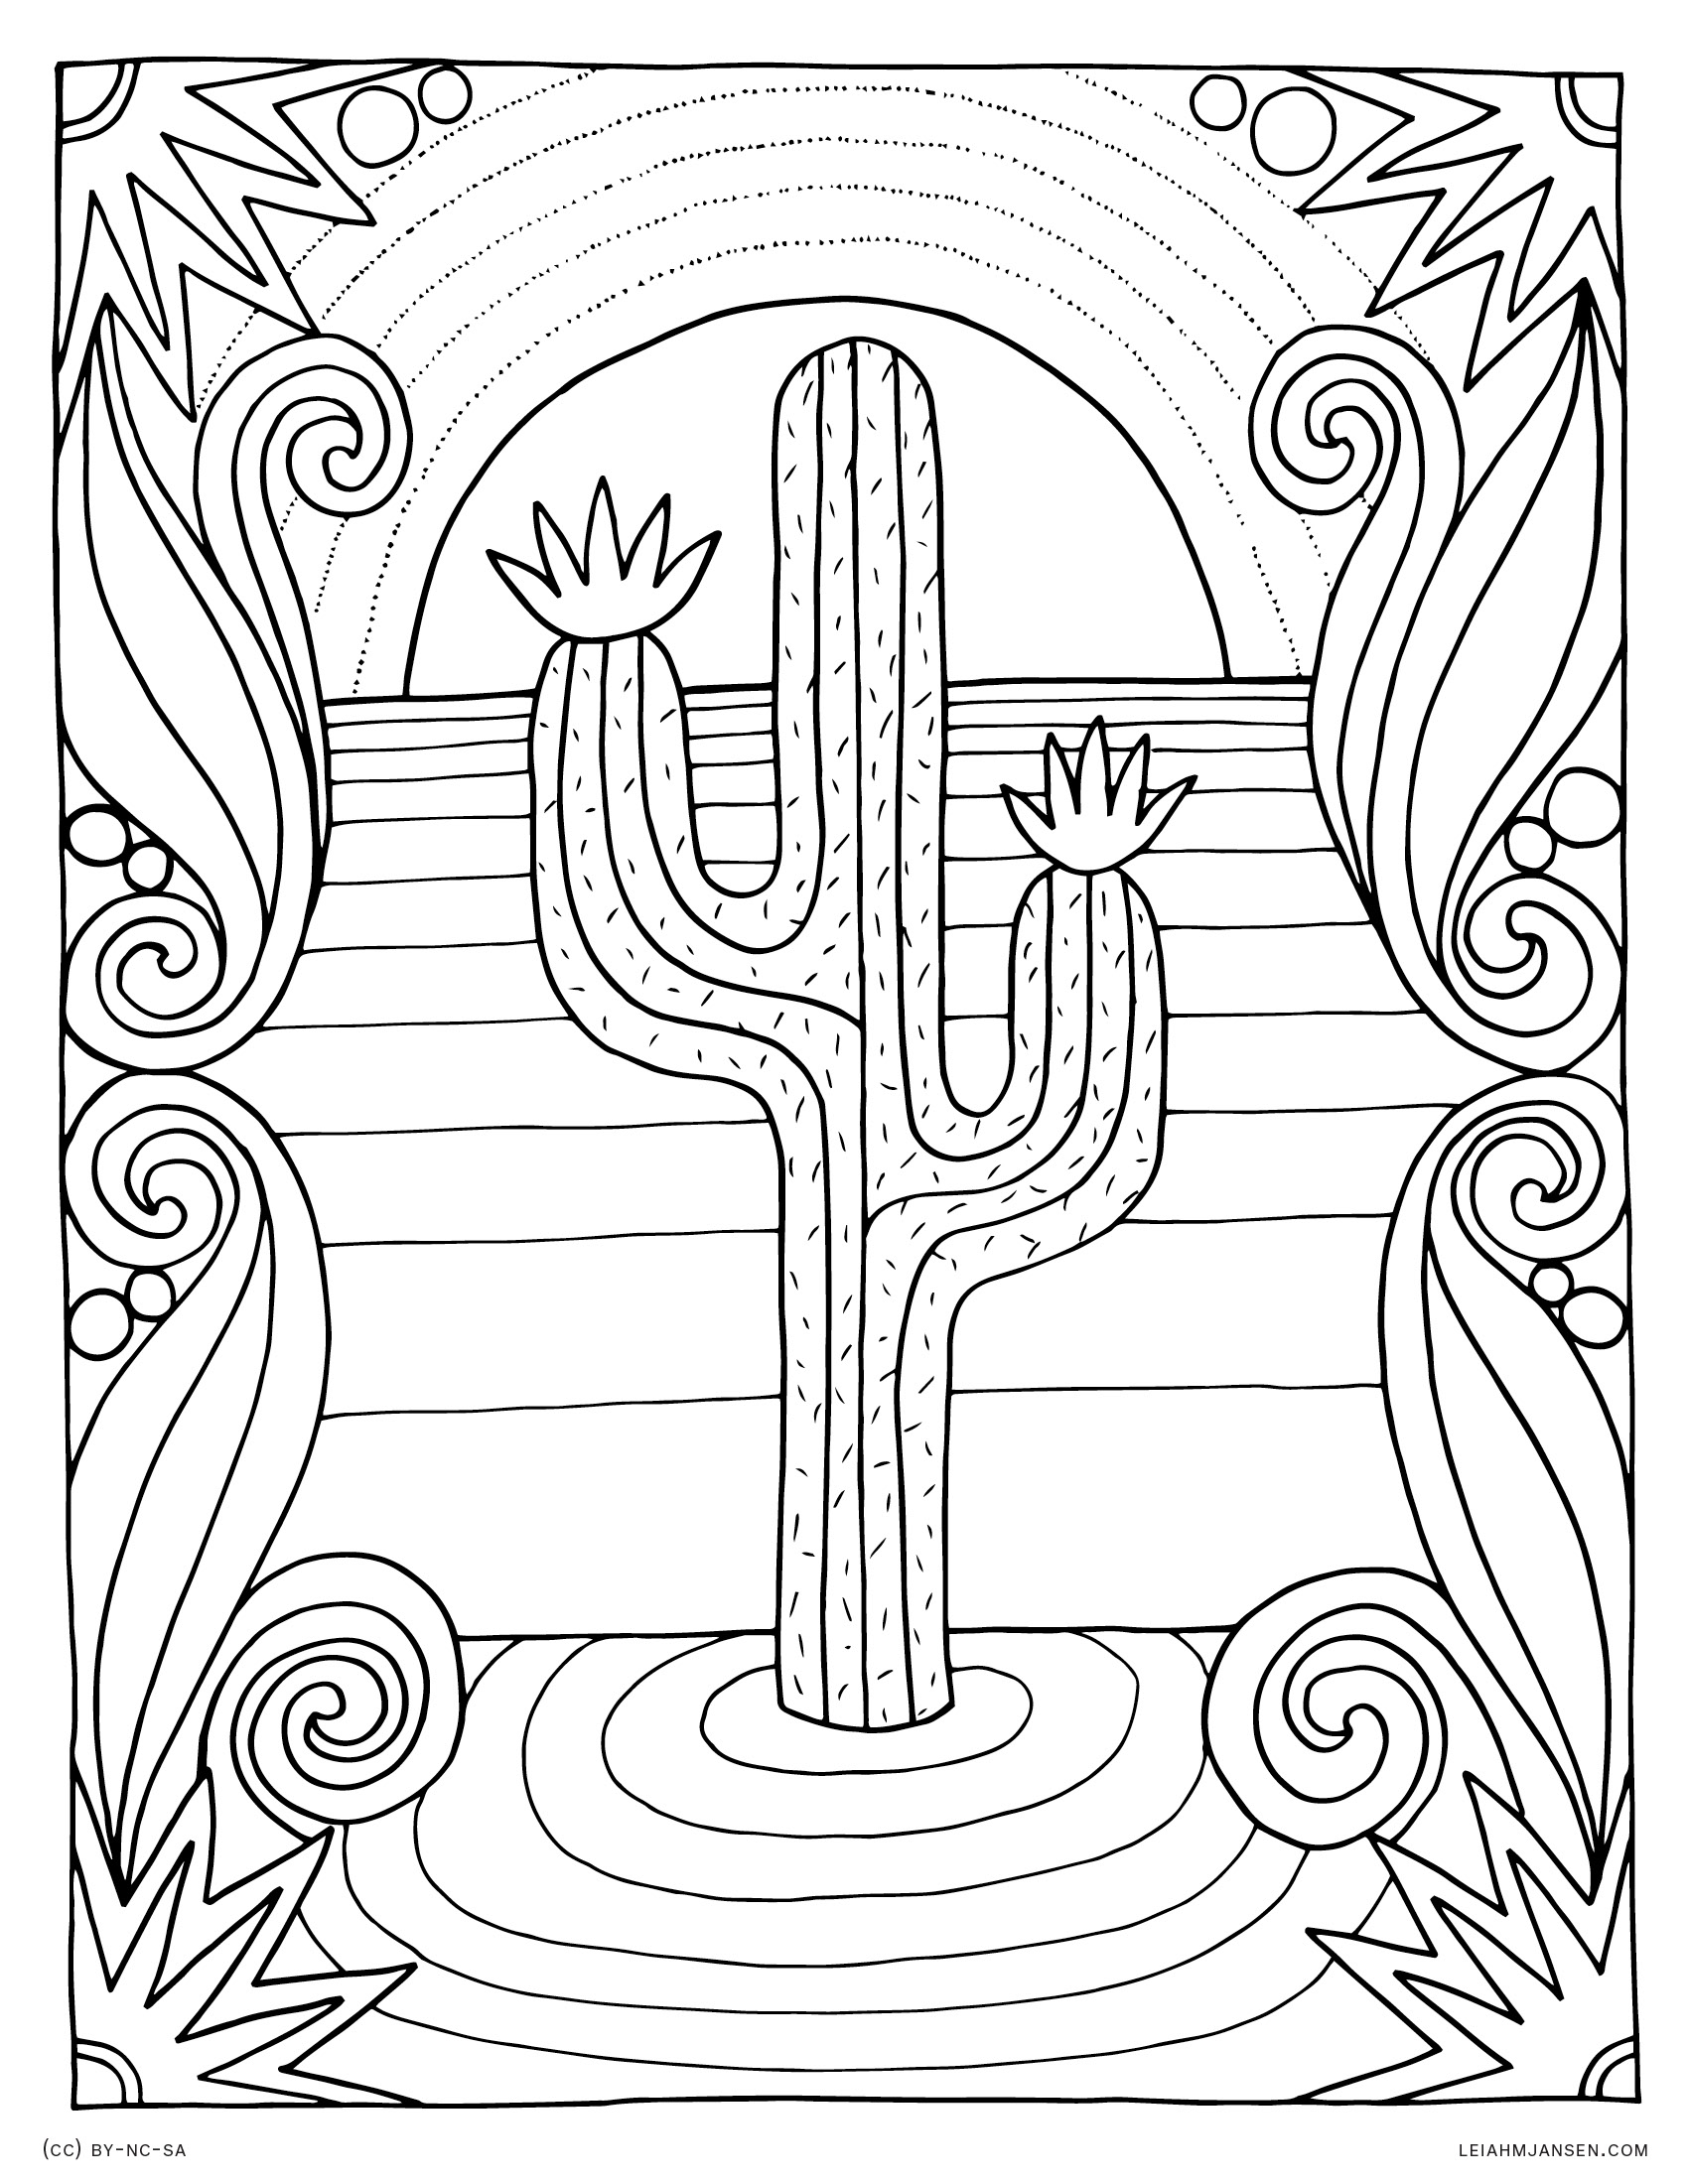 printables coloring pages for adults - photo#48